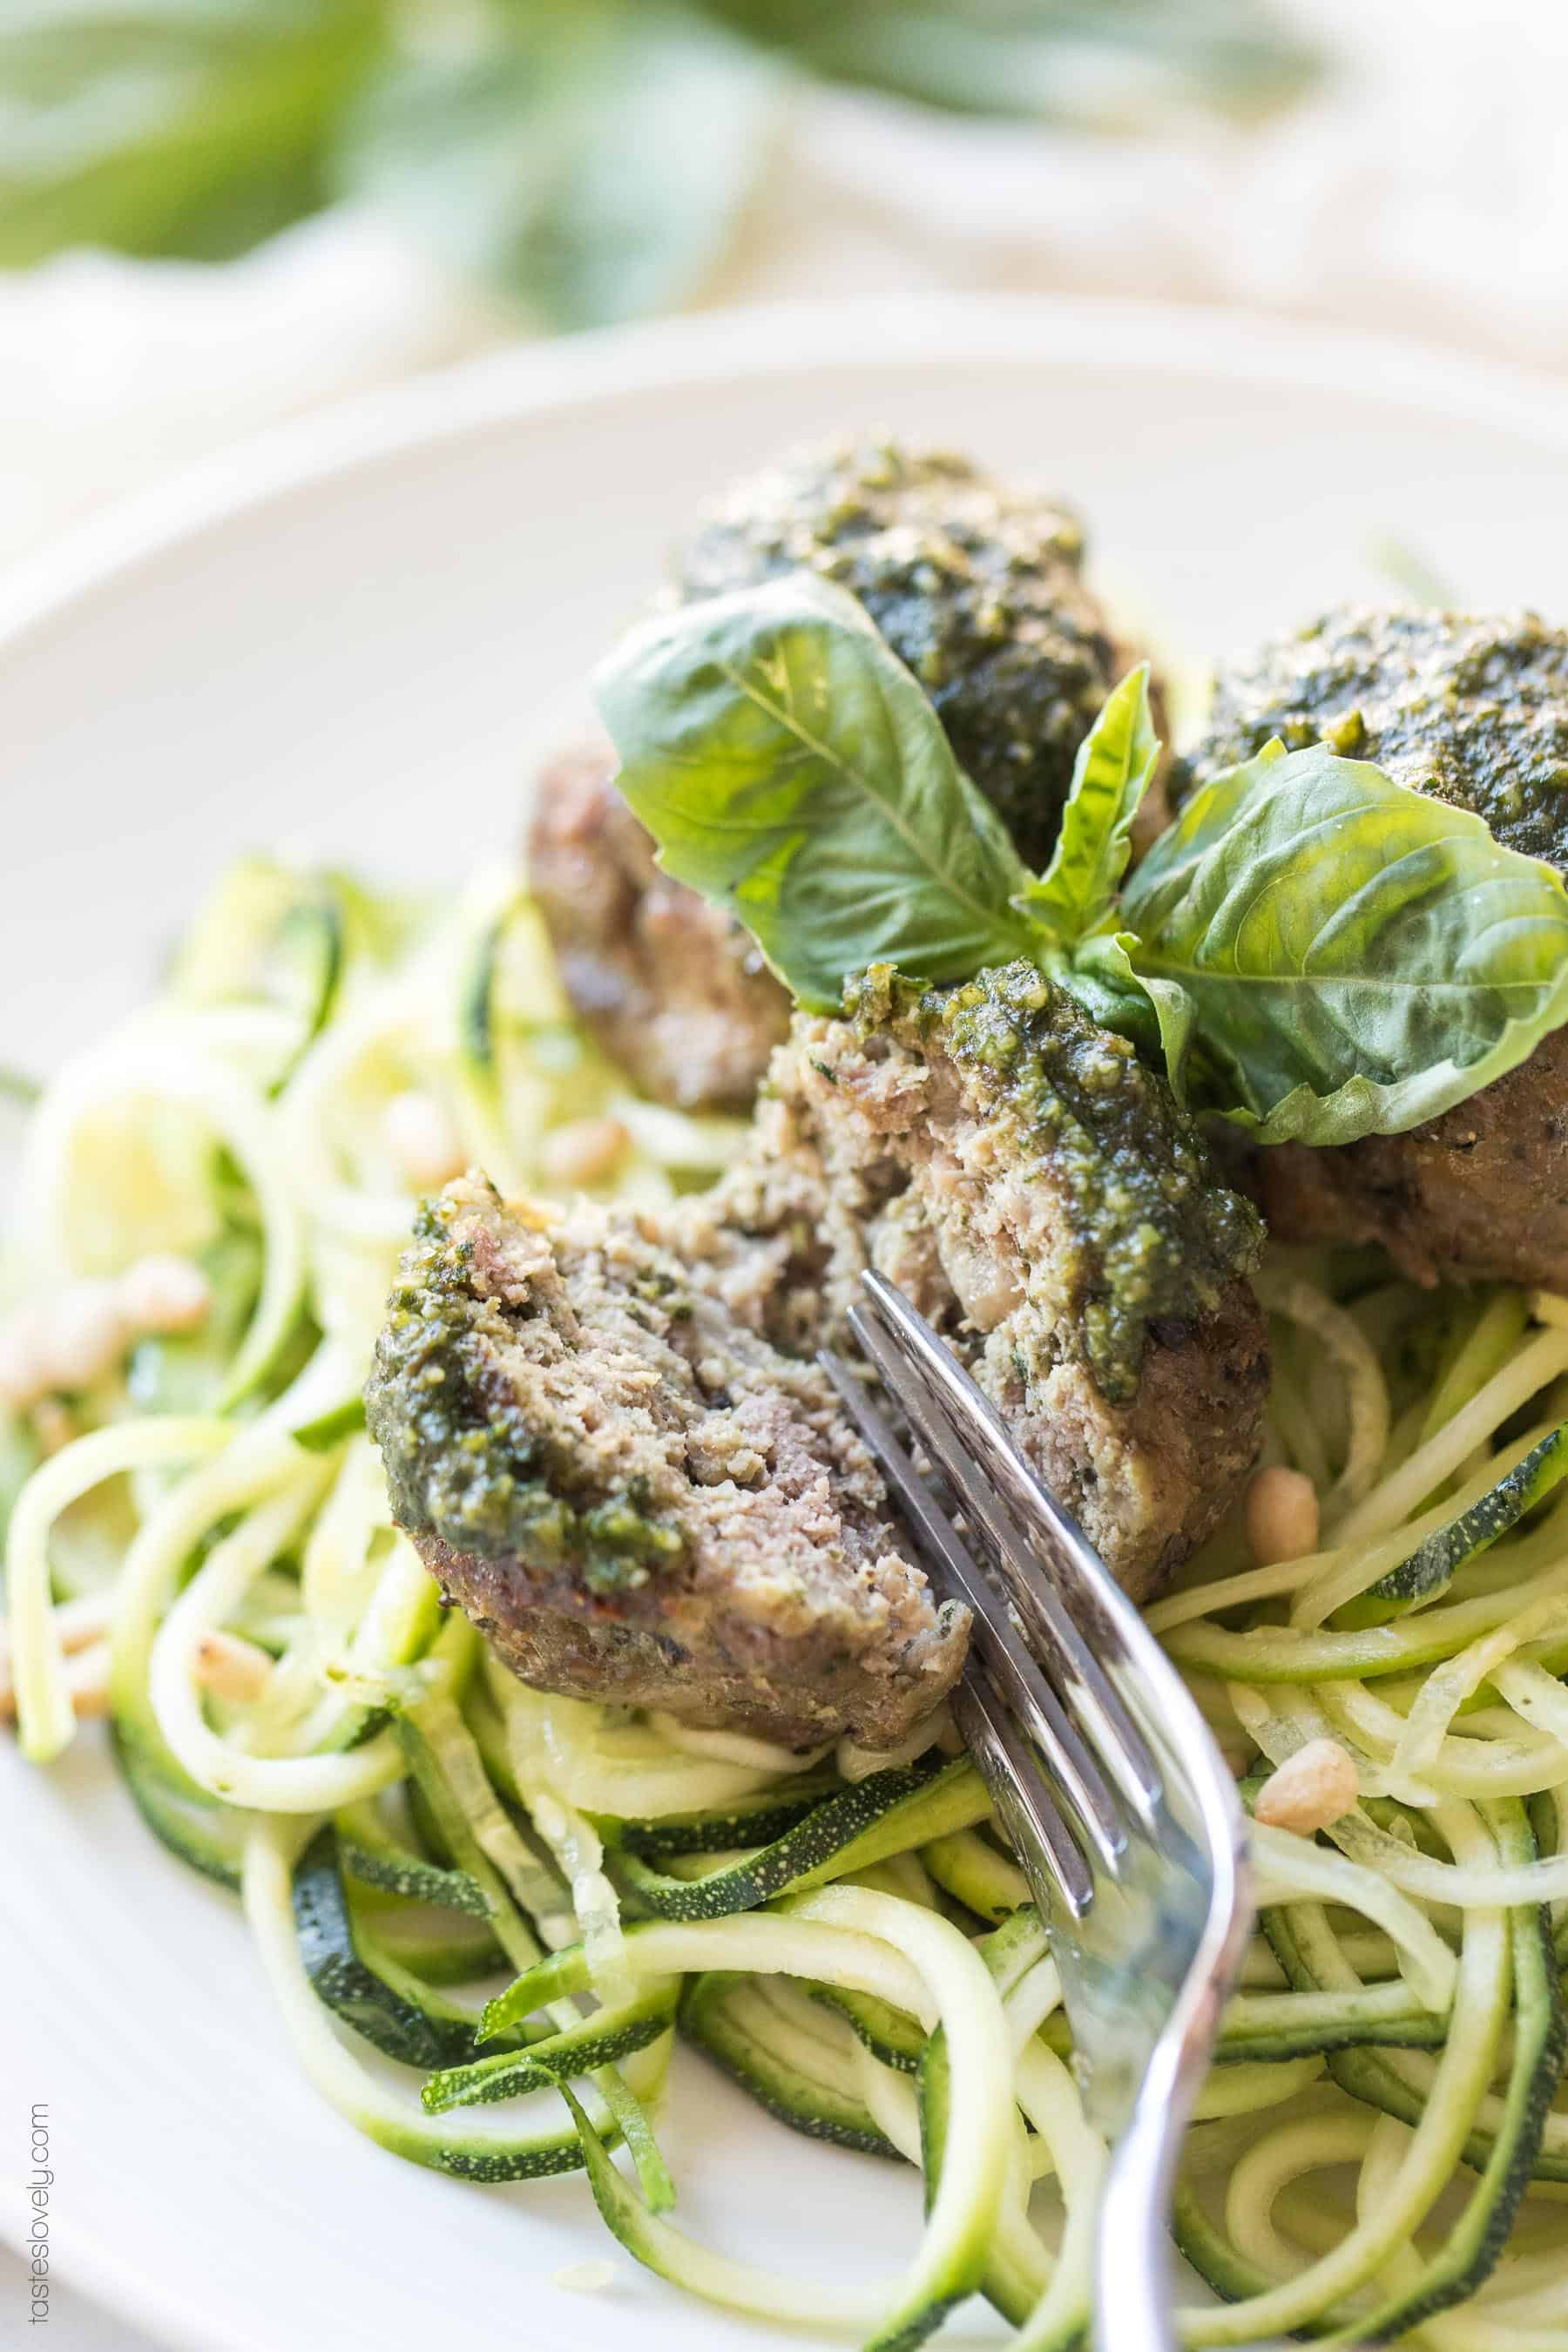 A fork cutting in to a pesto meatball on top of zucchini noodles